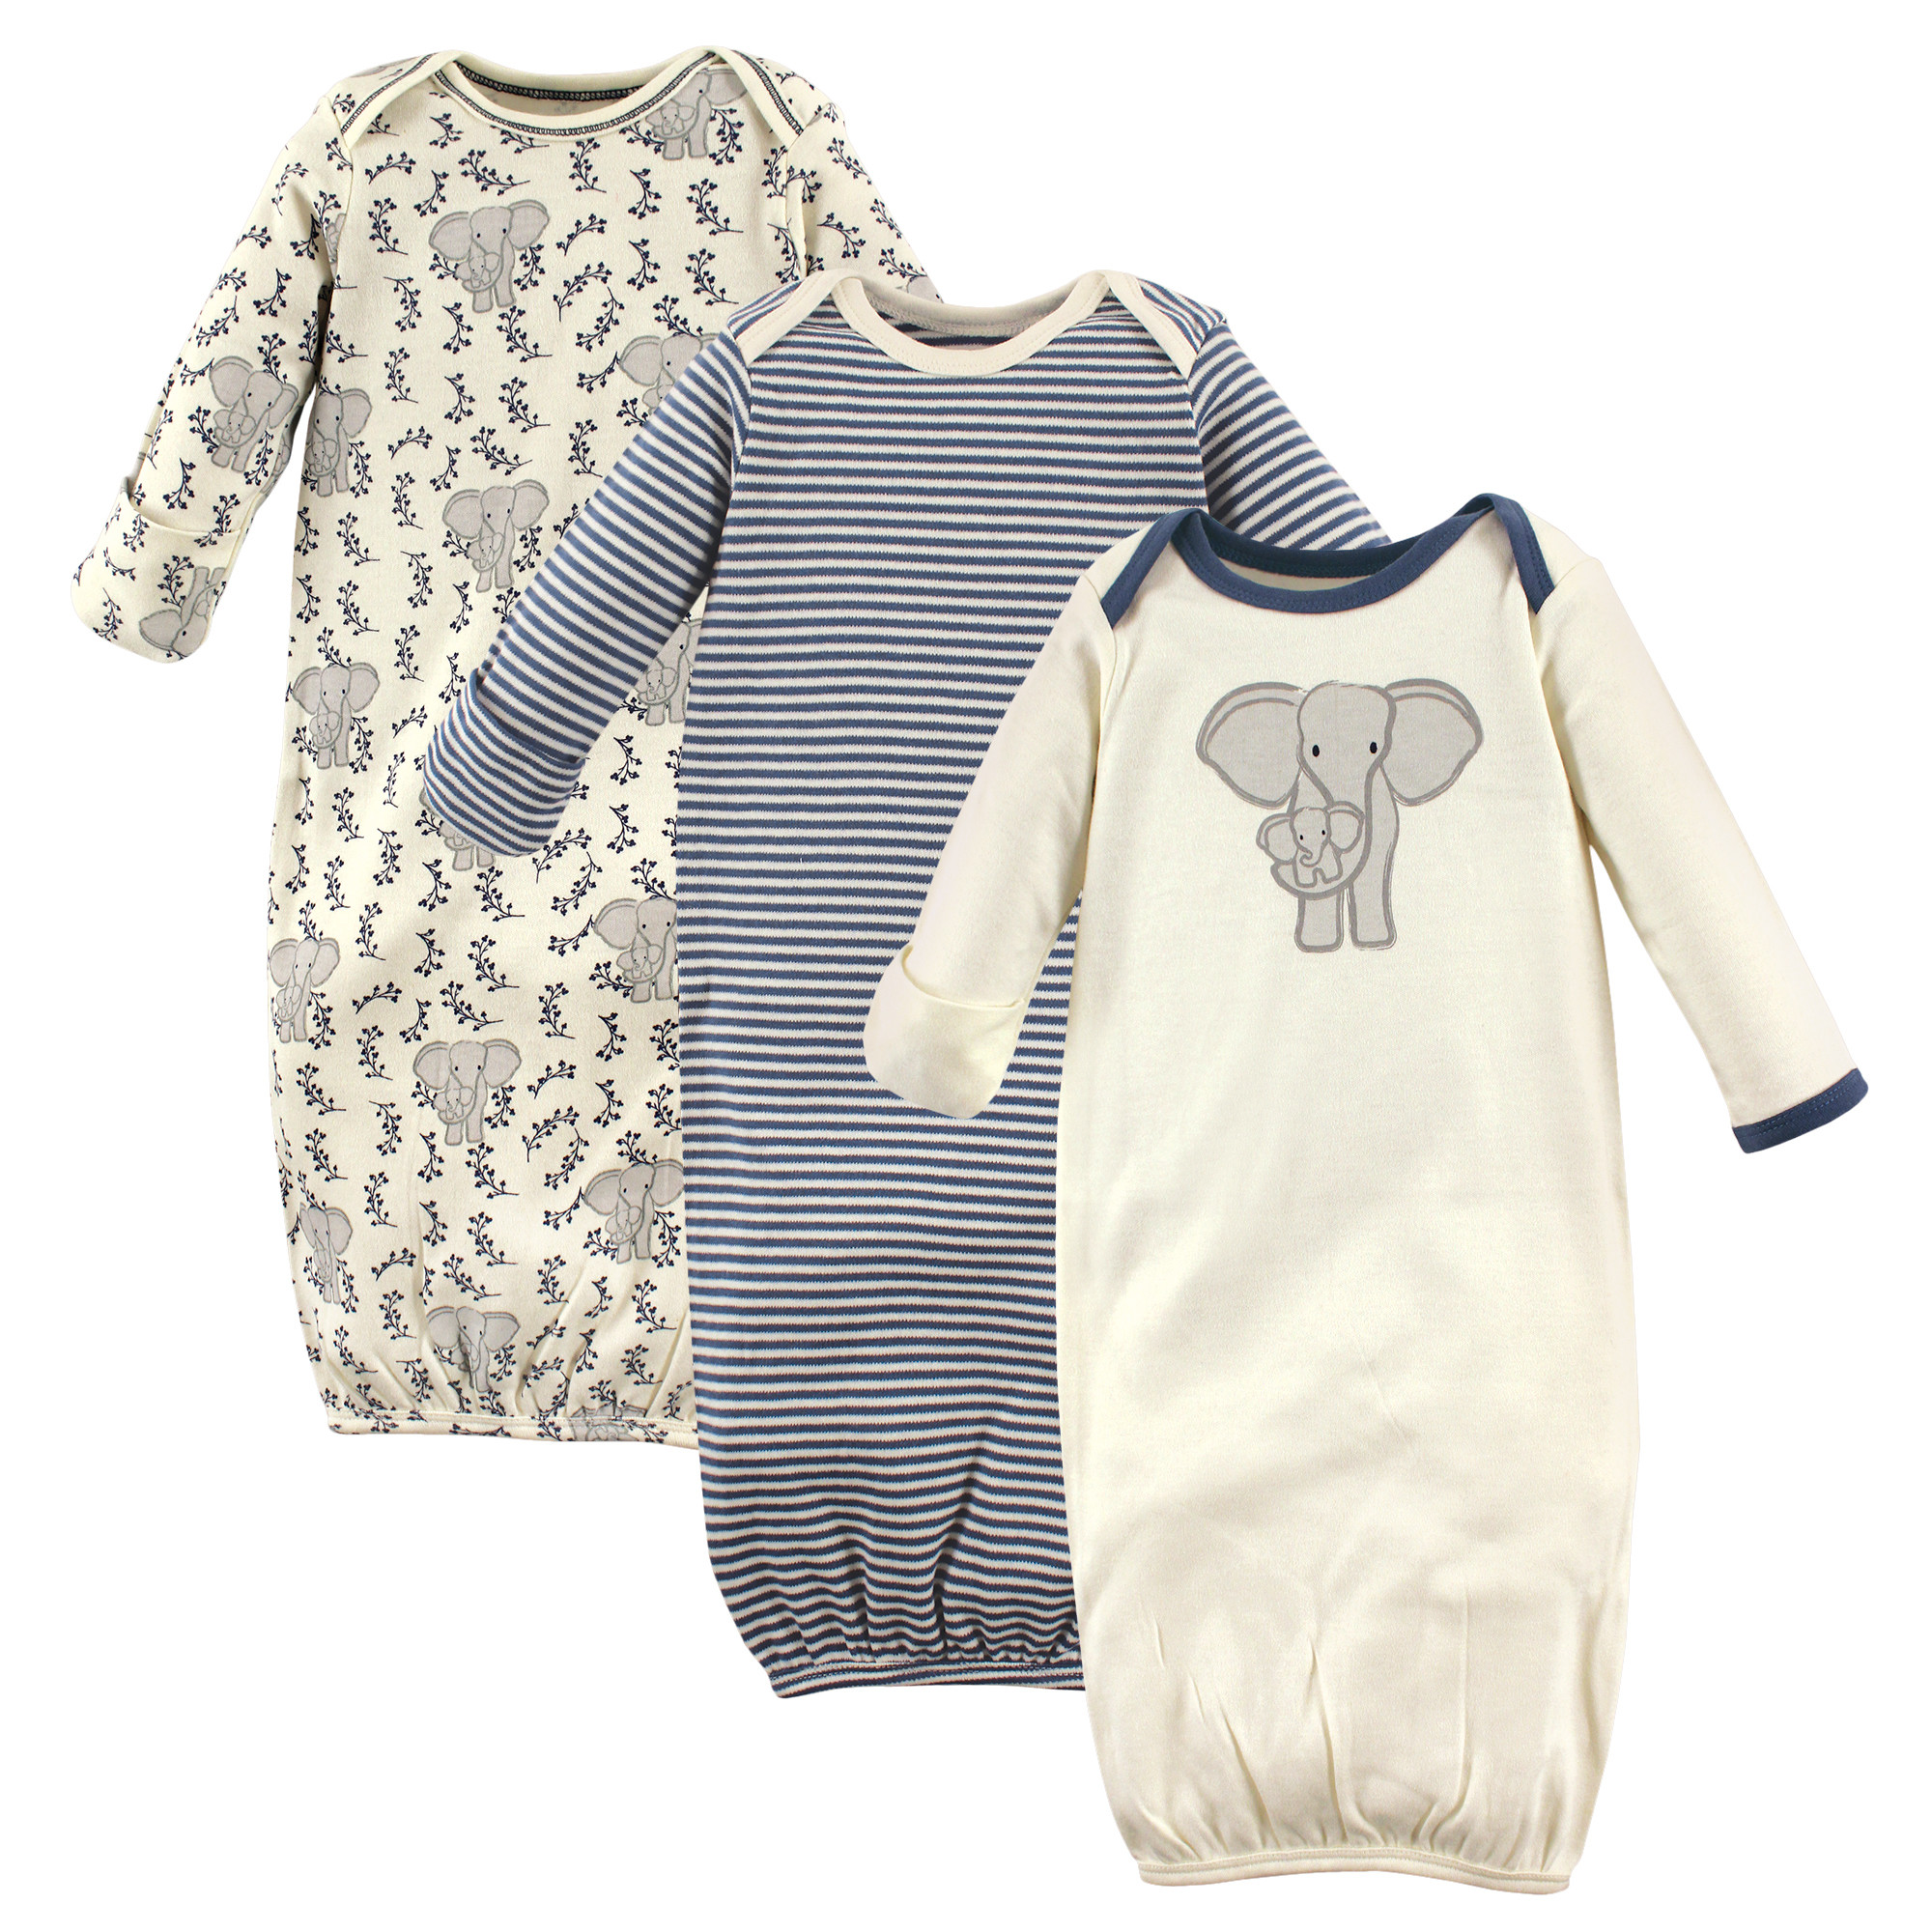 Babyvision Organic Clothing Sleeping Gowns Affordable Infant